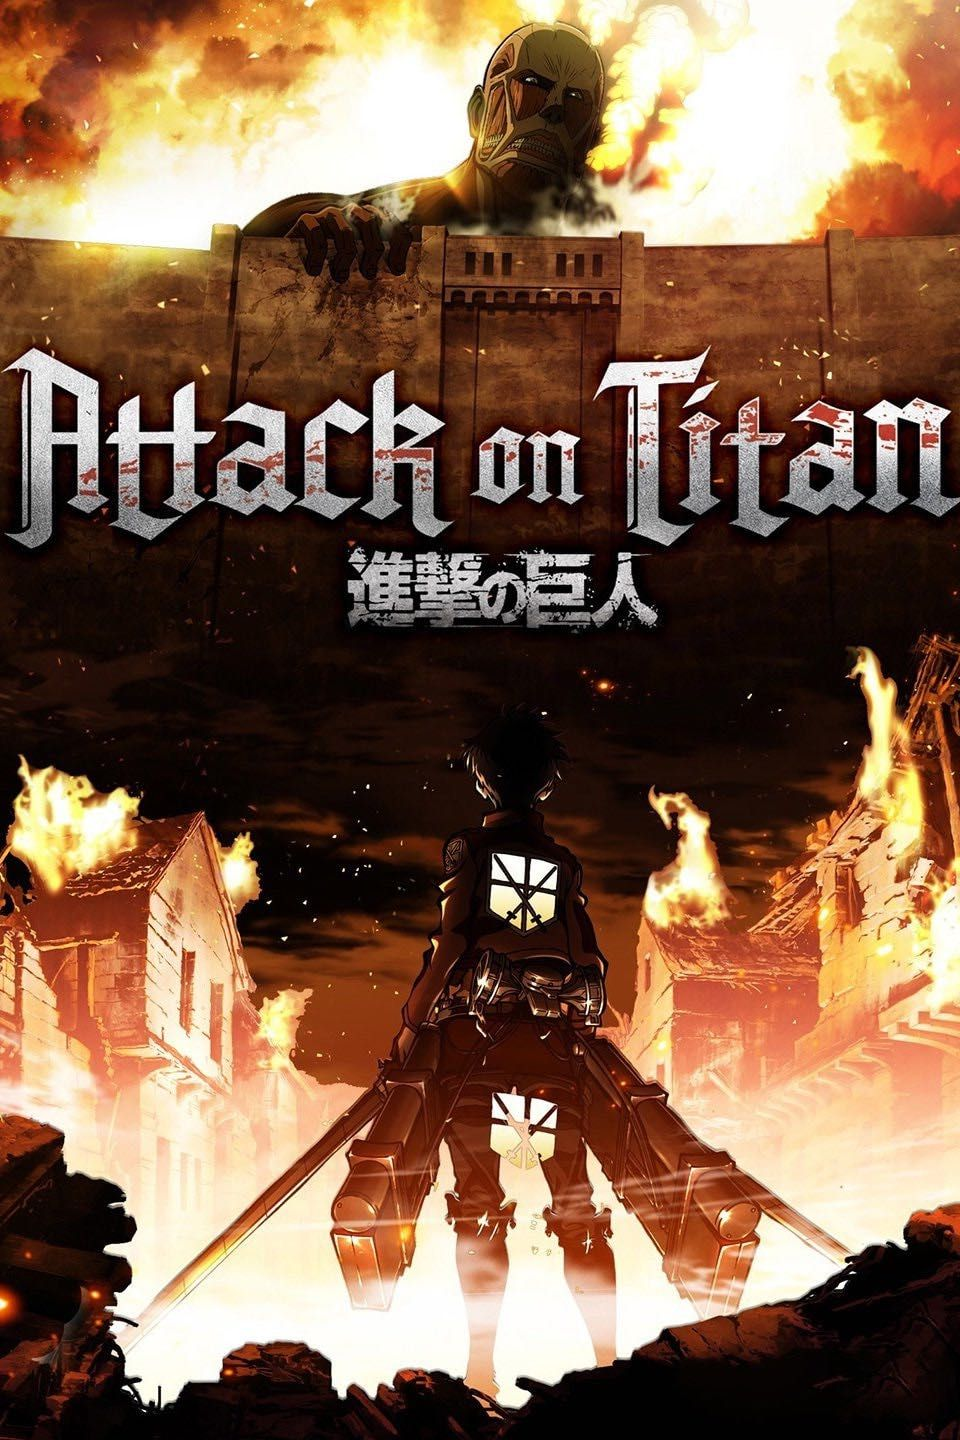 Attack Of Titans Poster Hd 960x1440 Wallpaper Teahub Io